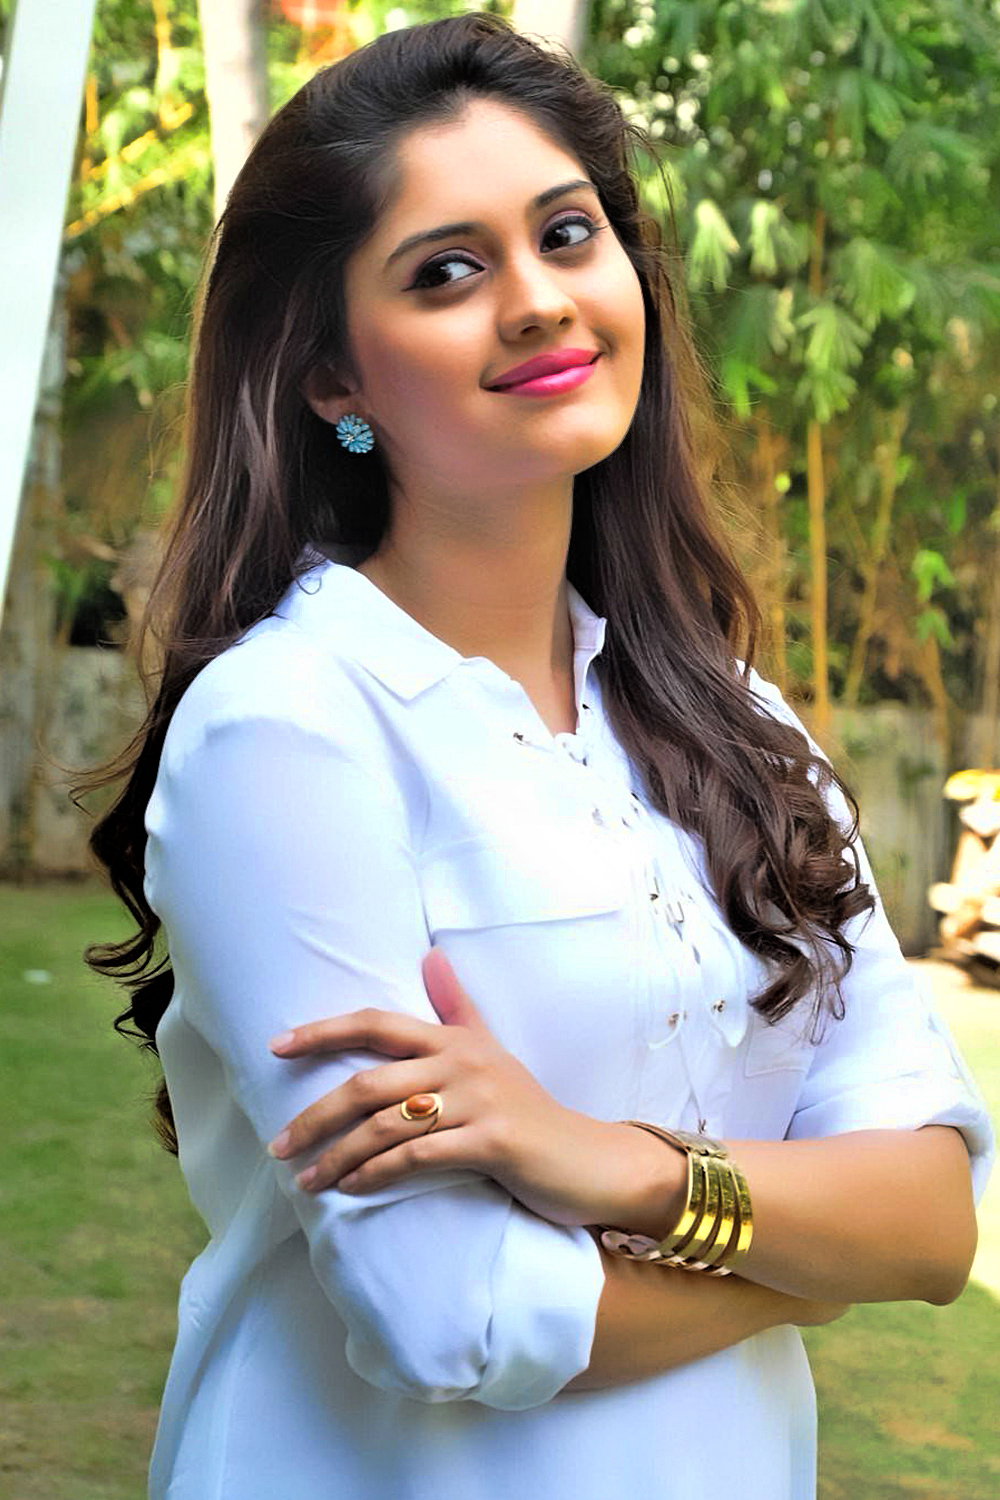 surabhi hd wallpapers | high definiton wallpaper compilation